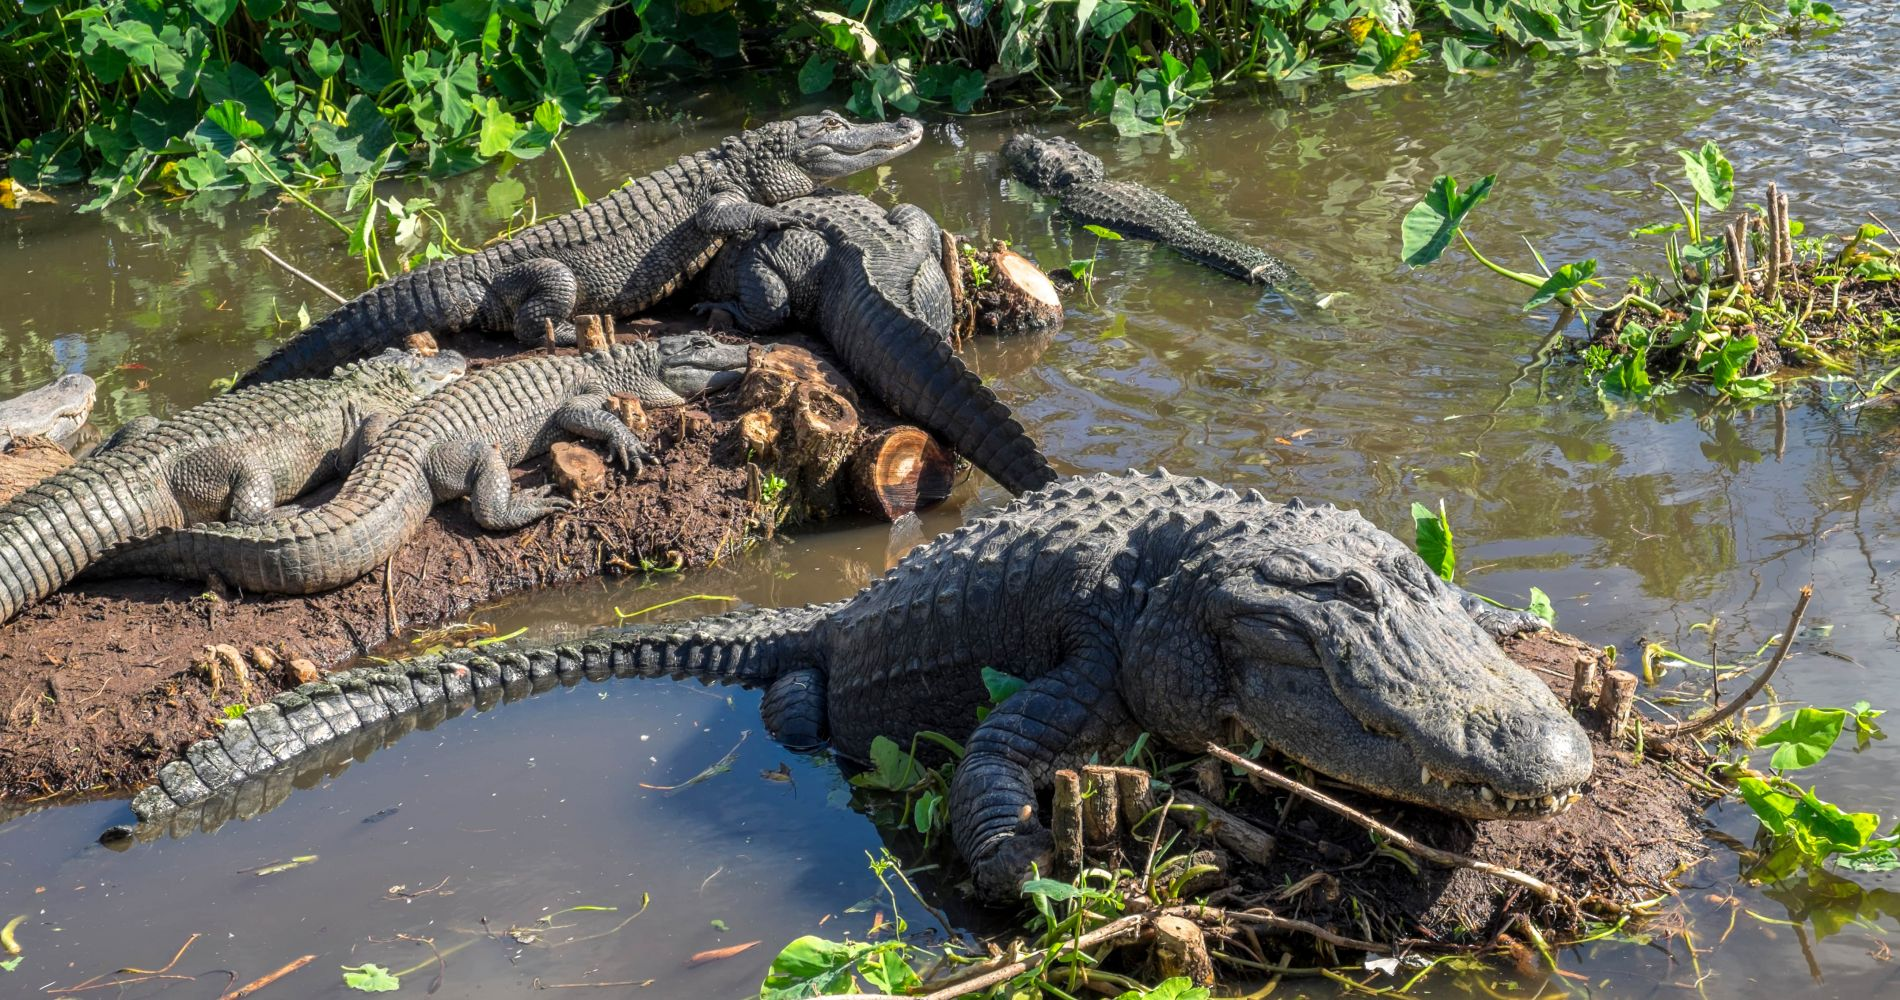 Visit Gatorland - The Alligator Capital of the World and other Attractions